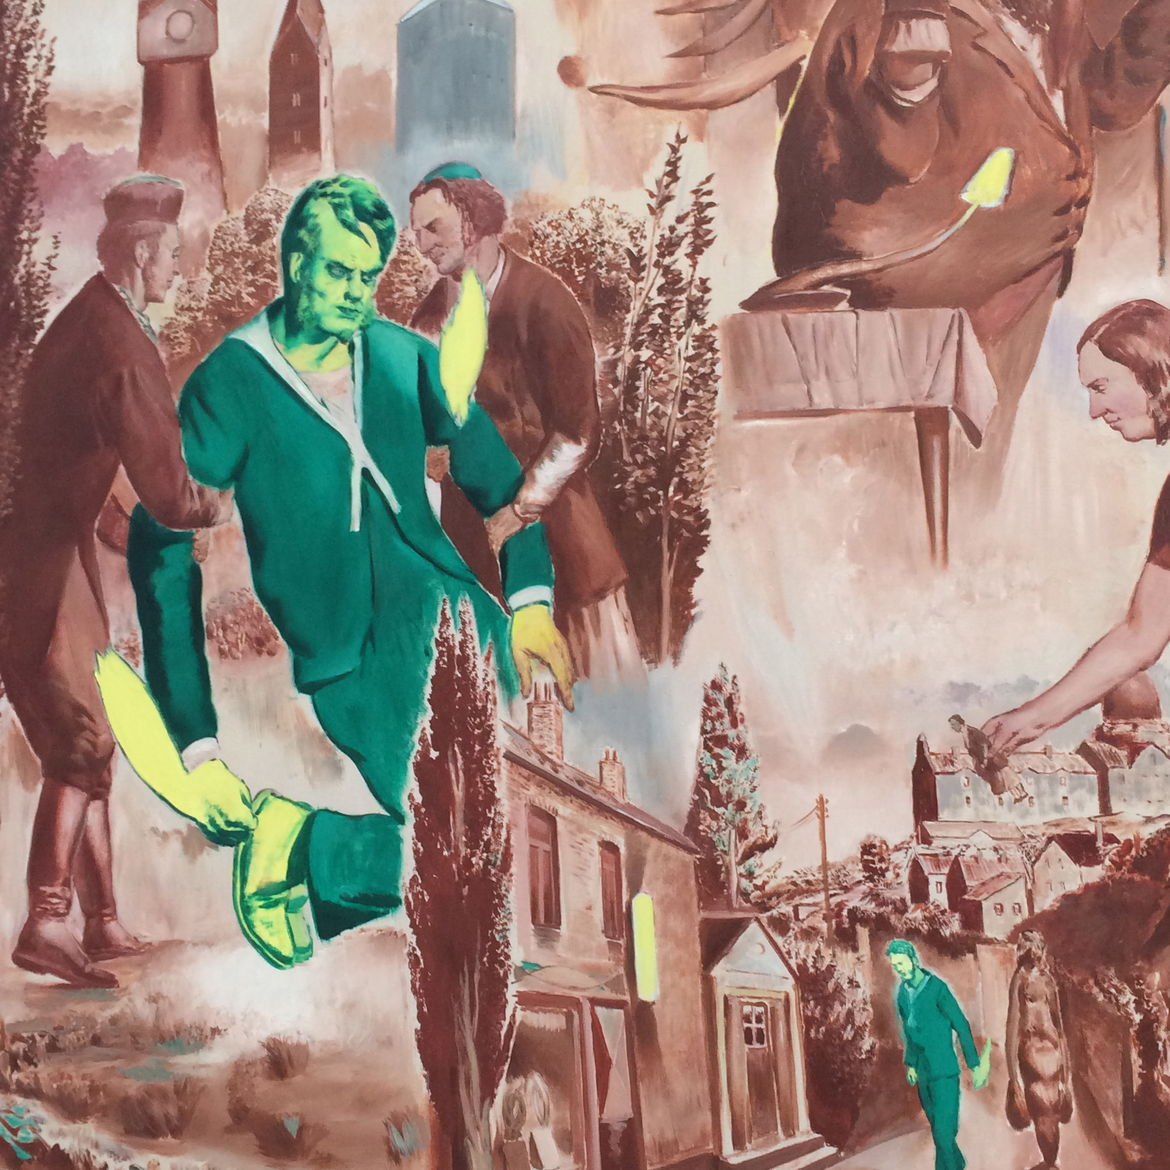 painting by neo rauch germany